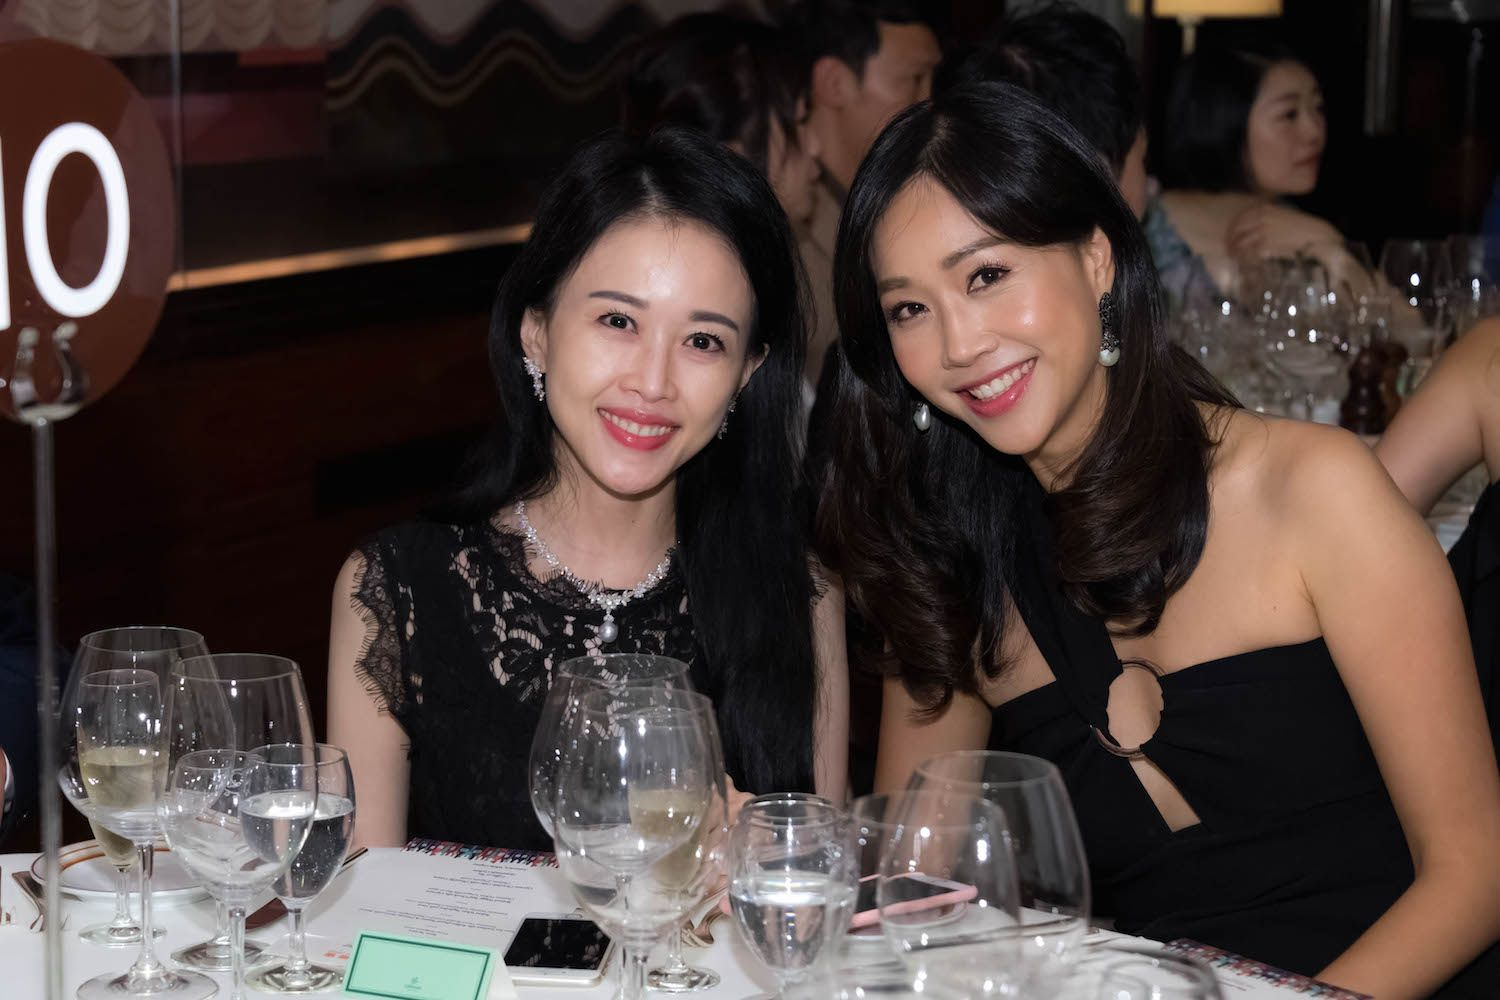 Jacqueline Chow and Angie Ting